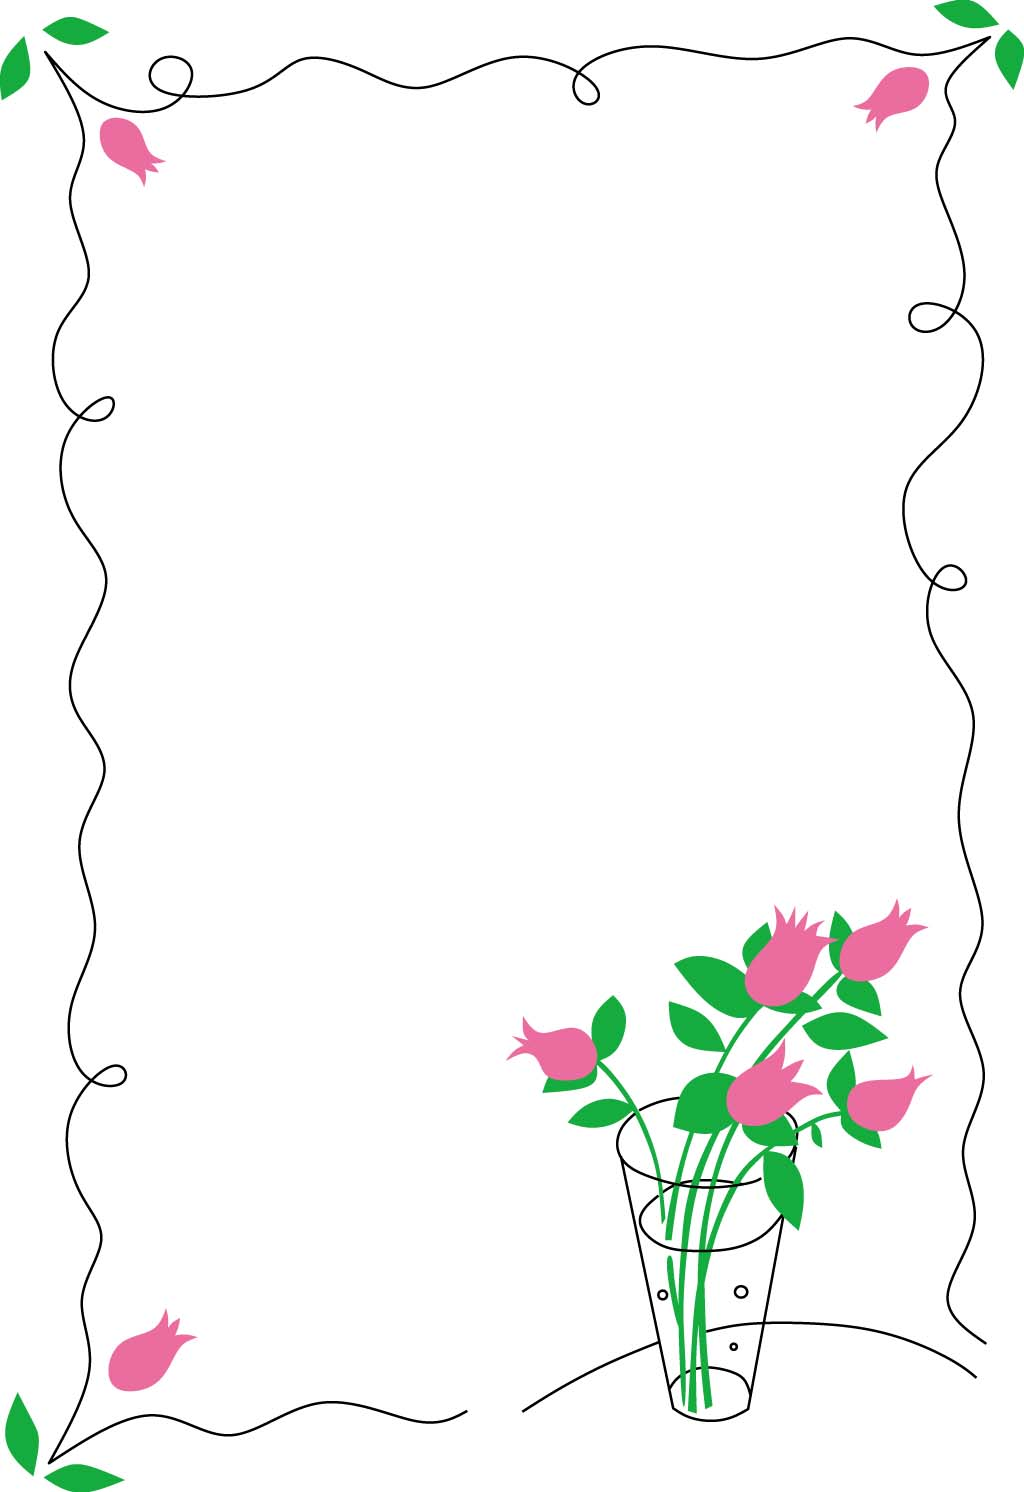 20 Floral Border Vector Images - Free Floral Vector ...